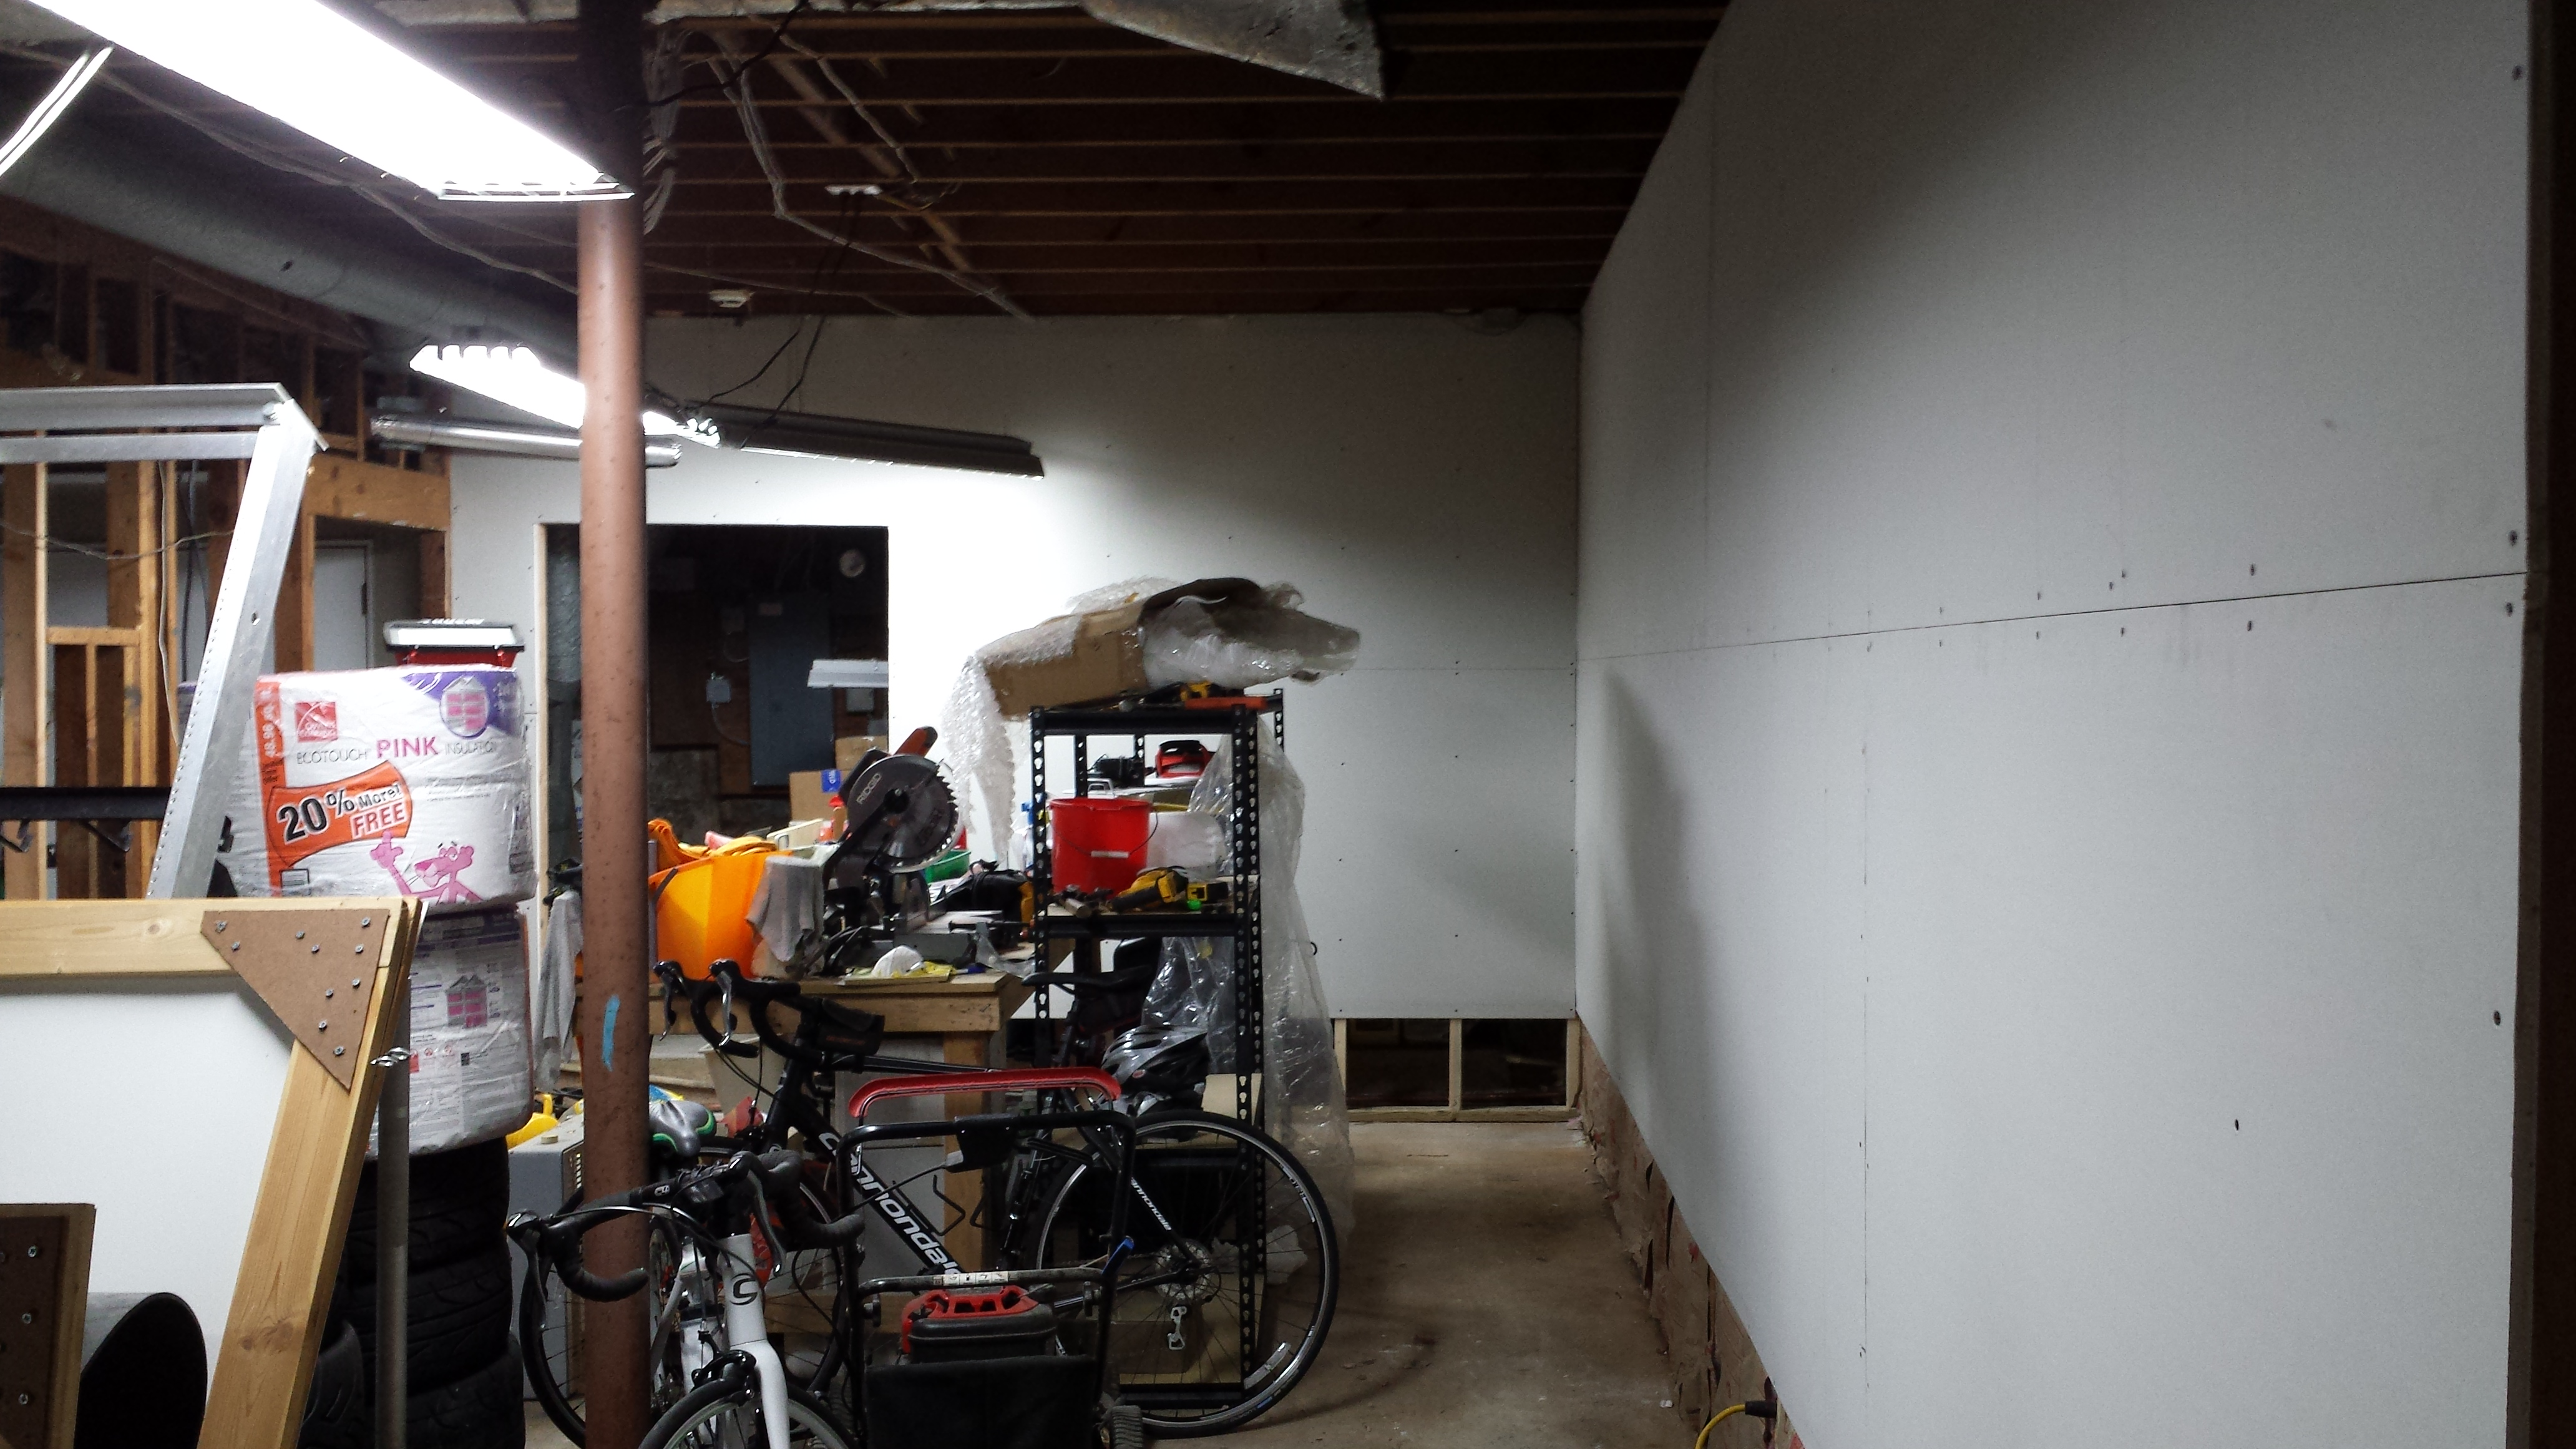 Drywall is up